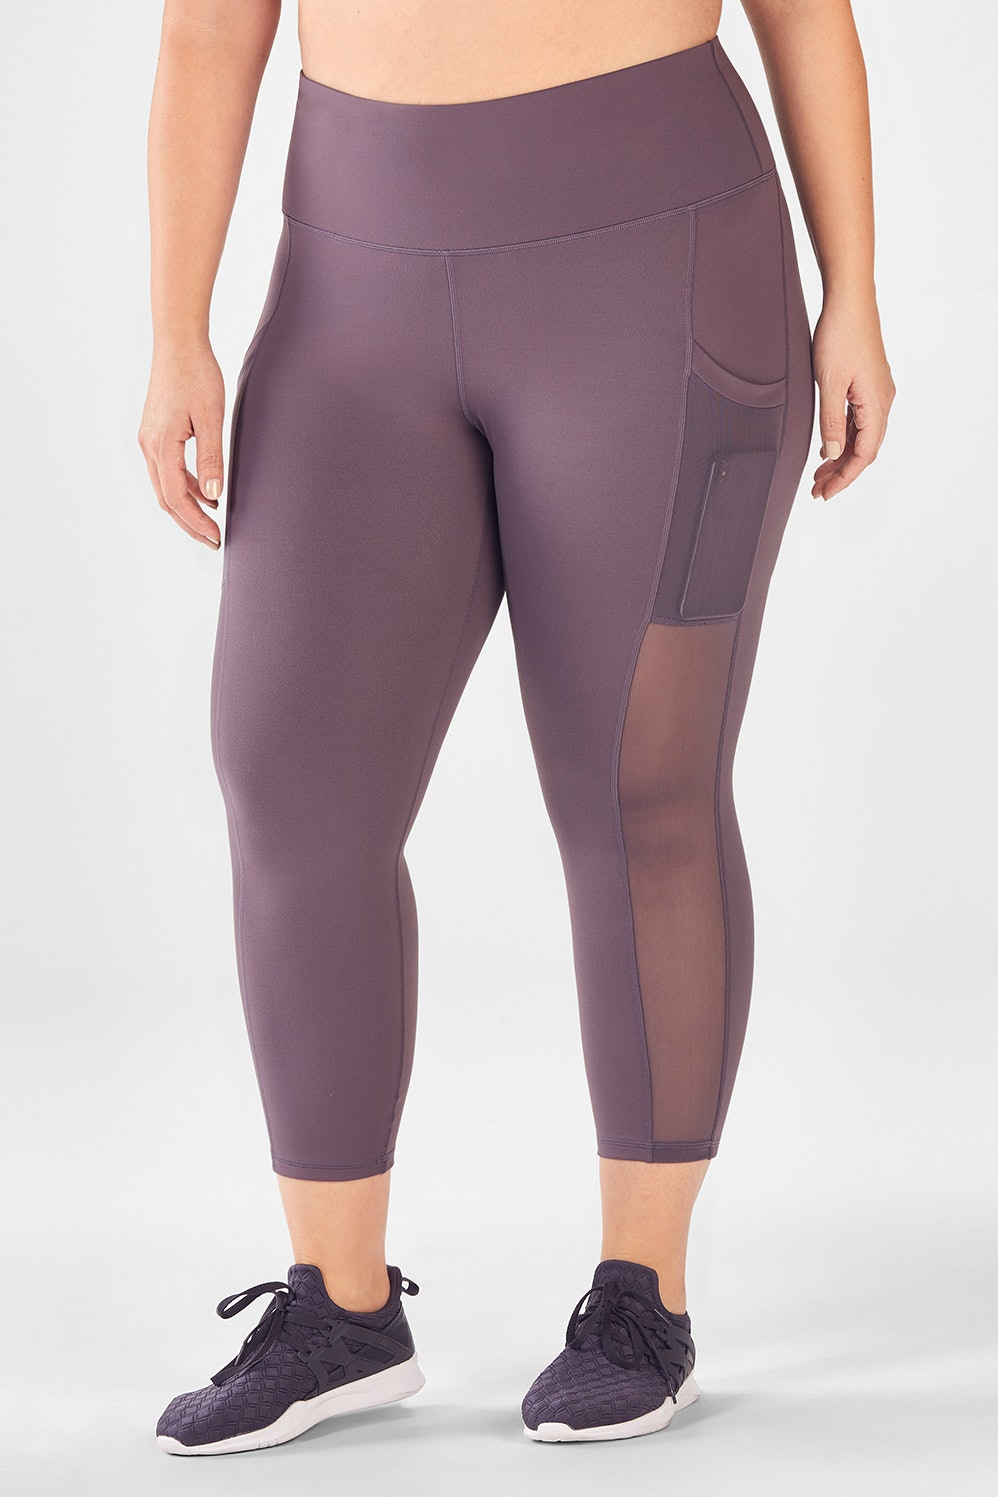 eb13389664d8e 12 Workout Leggings With Pockets That Let You Take The Important Stuff With  You